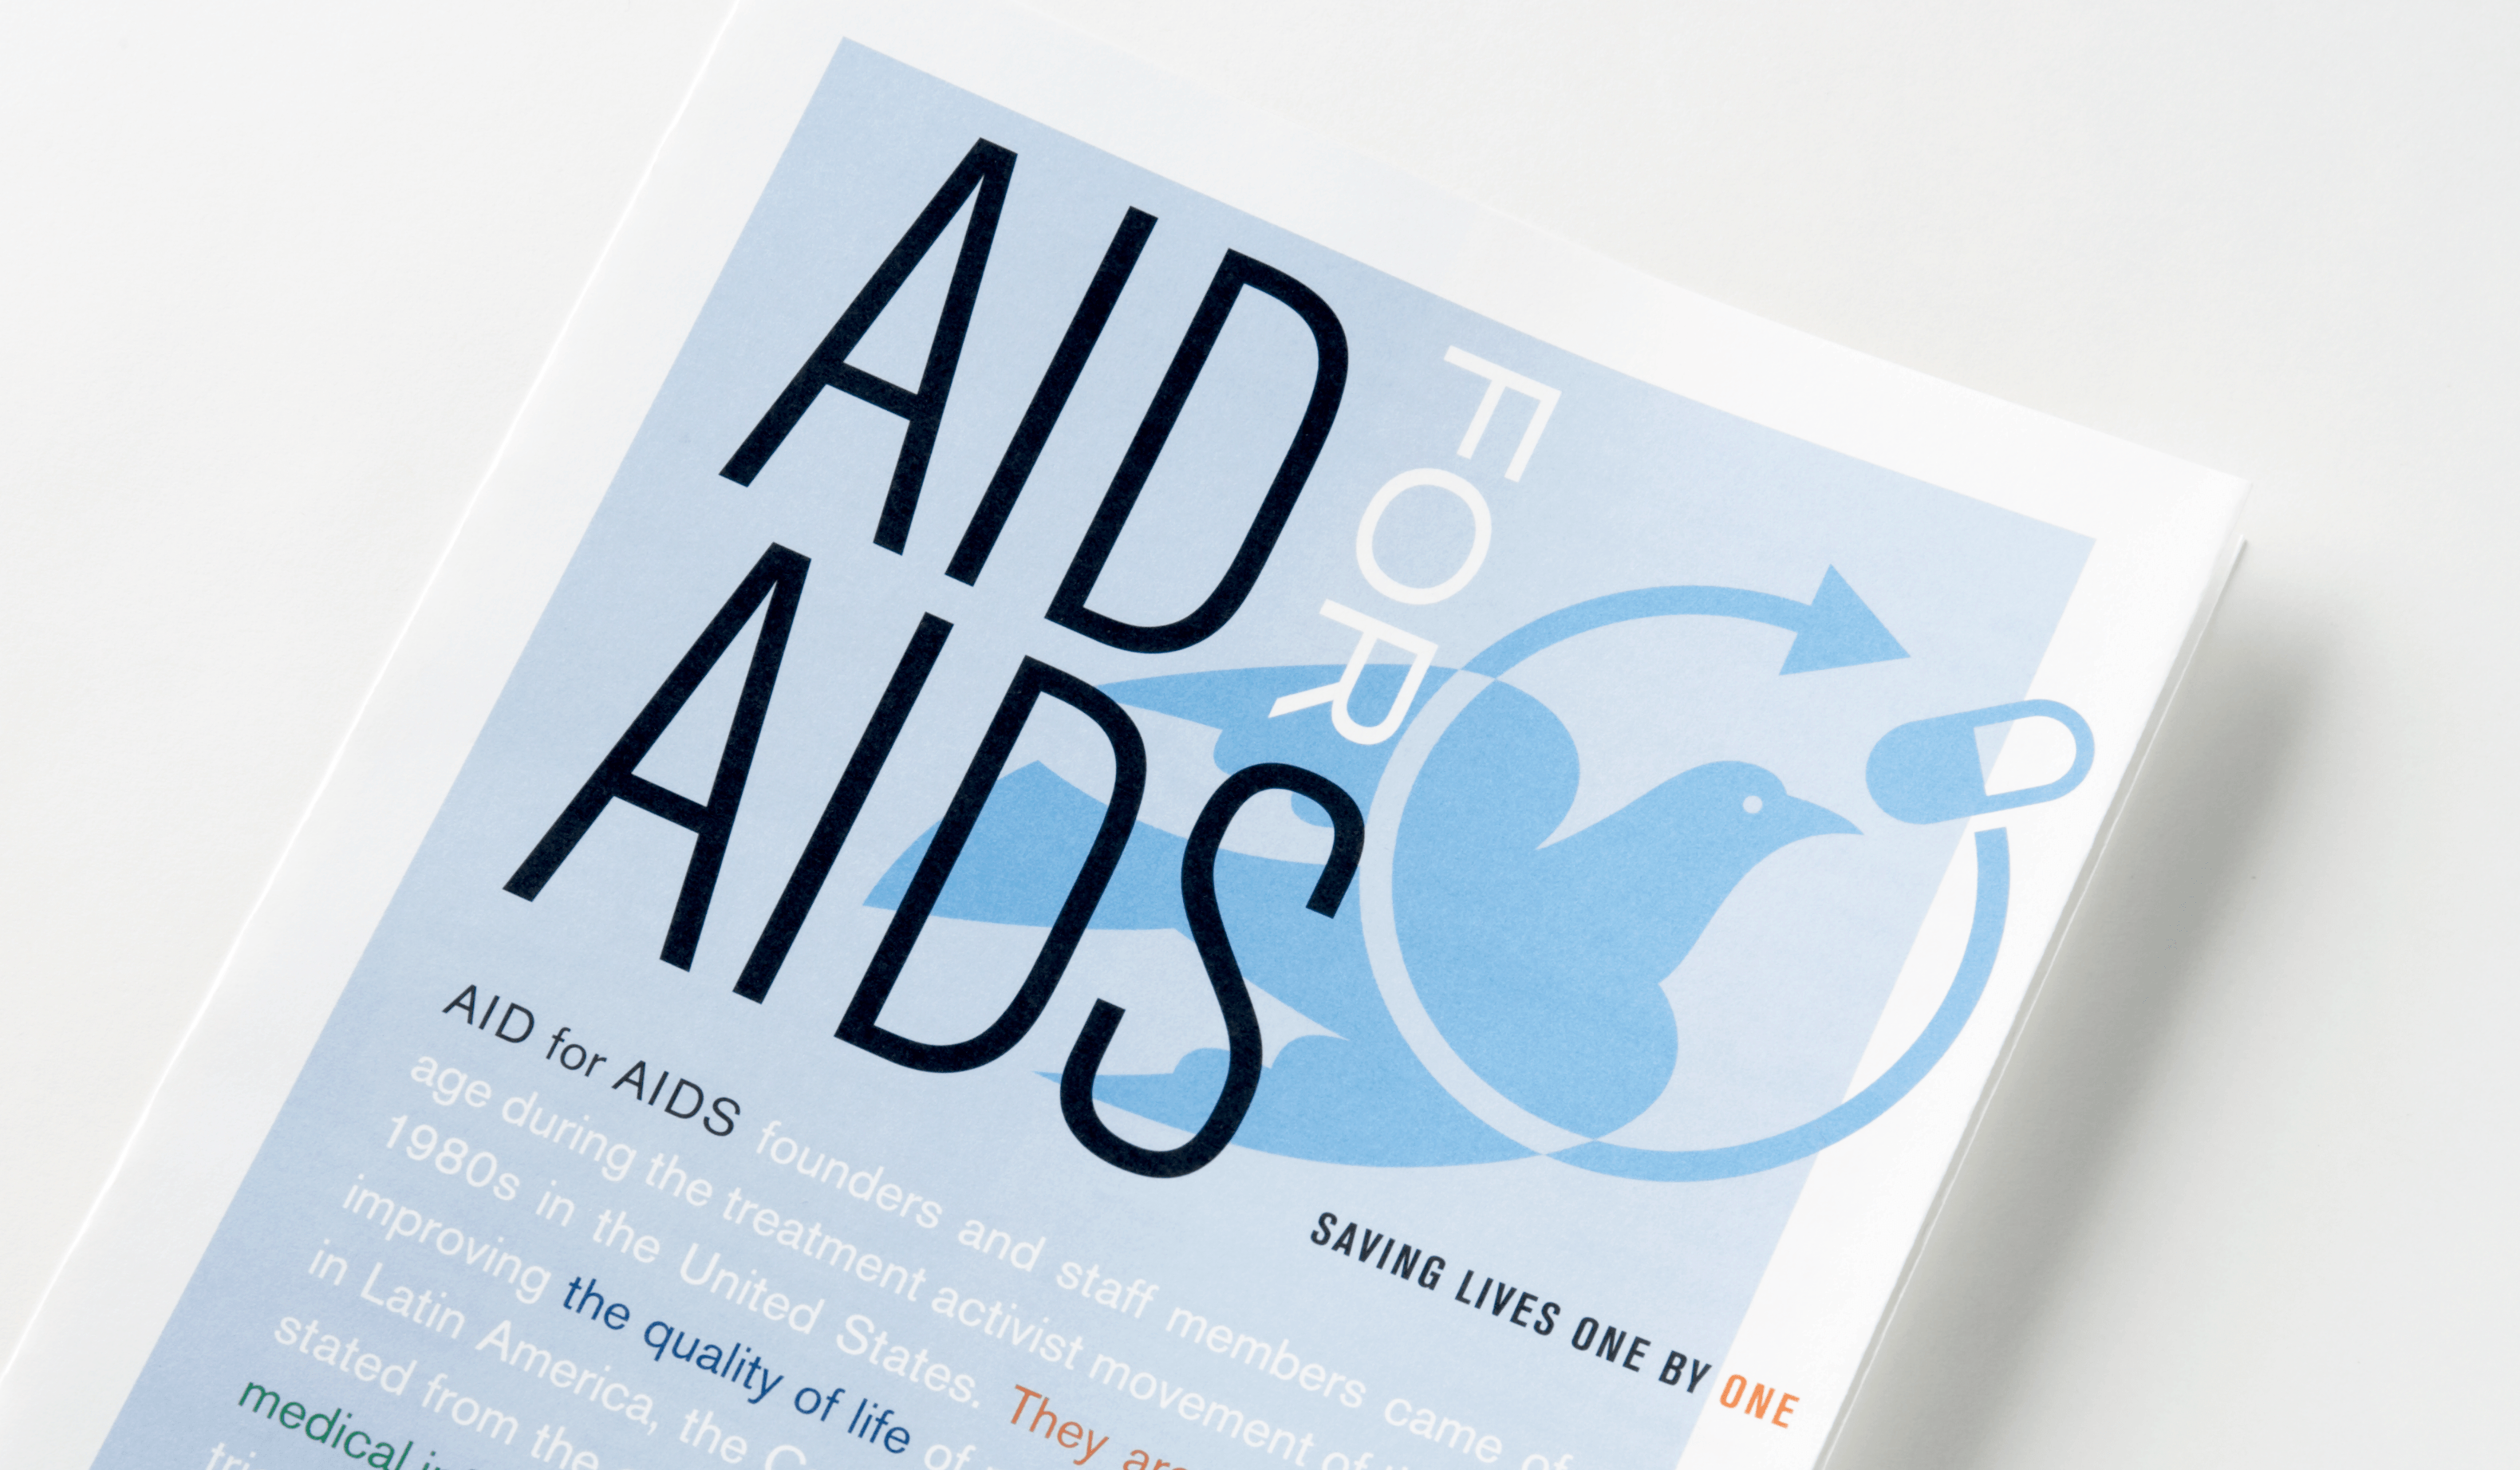 AID for AIDS